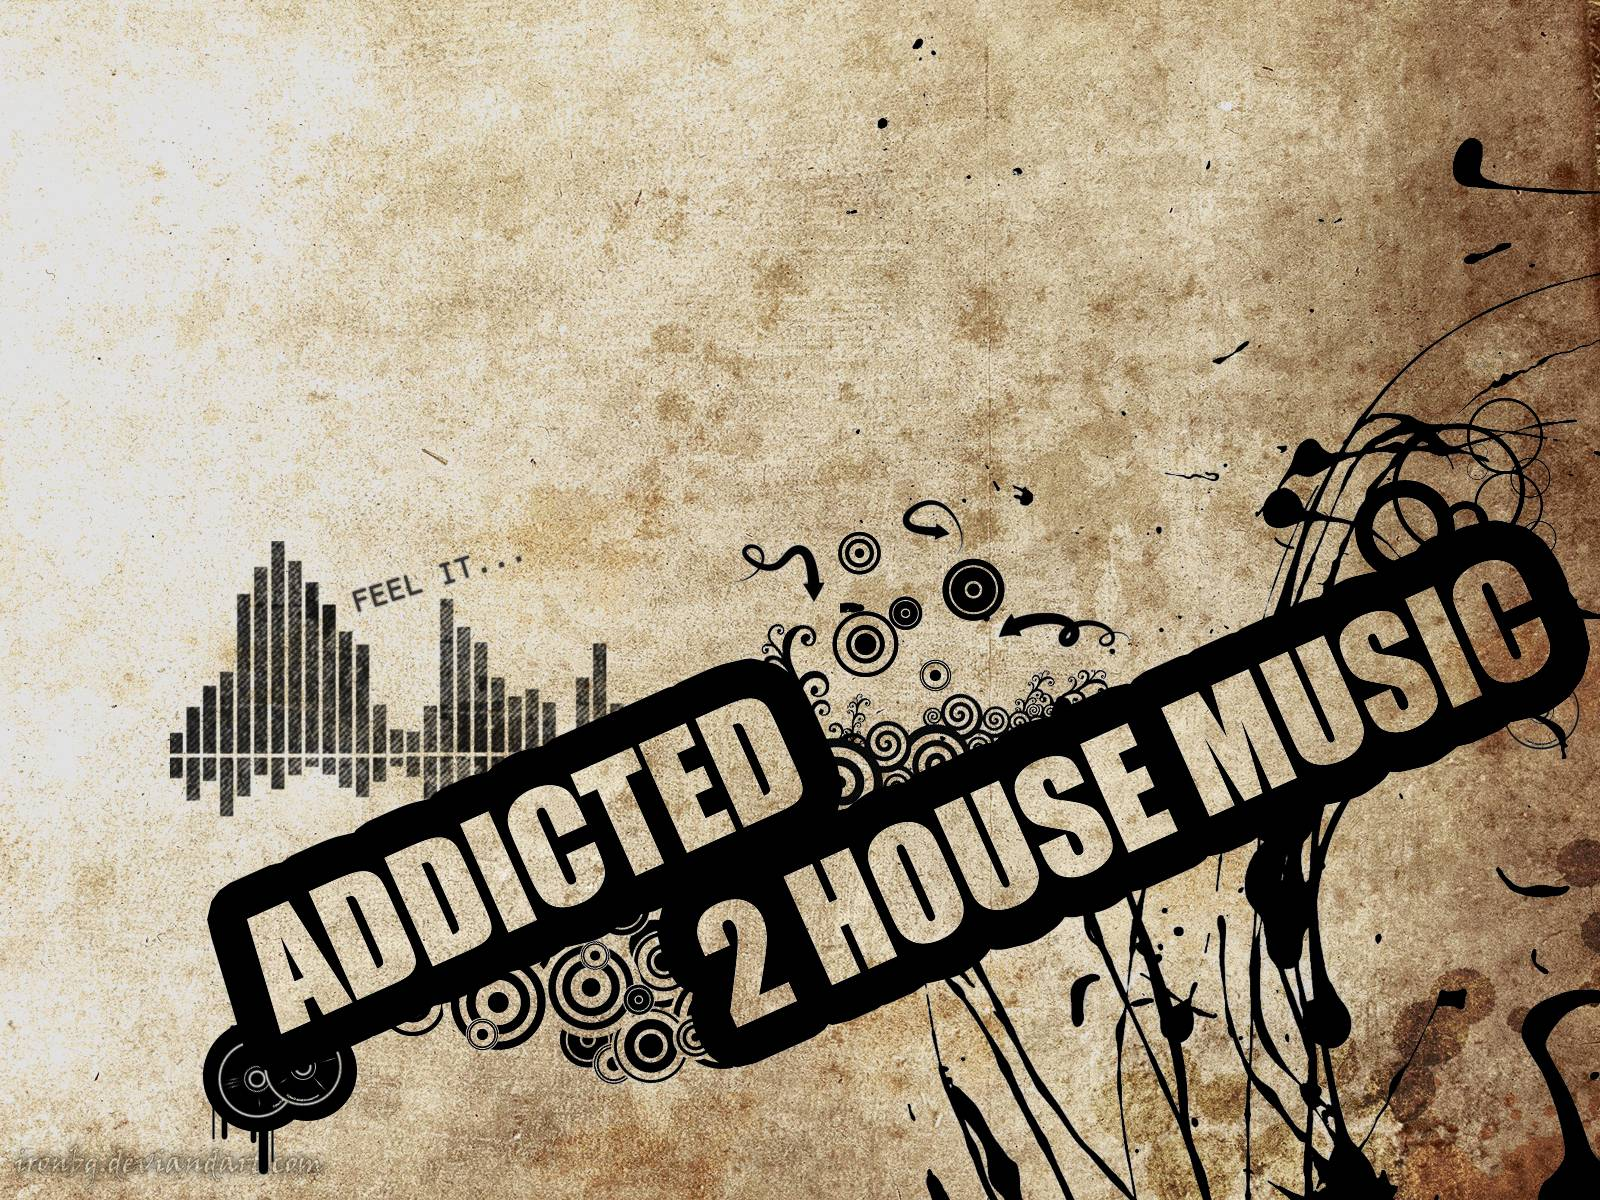 House music wallpapers wallpaper cave for House house house music